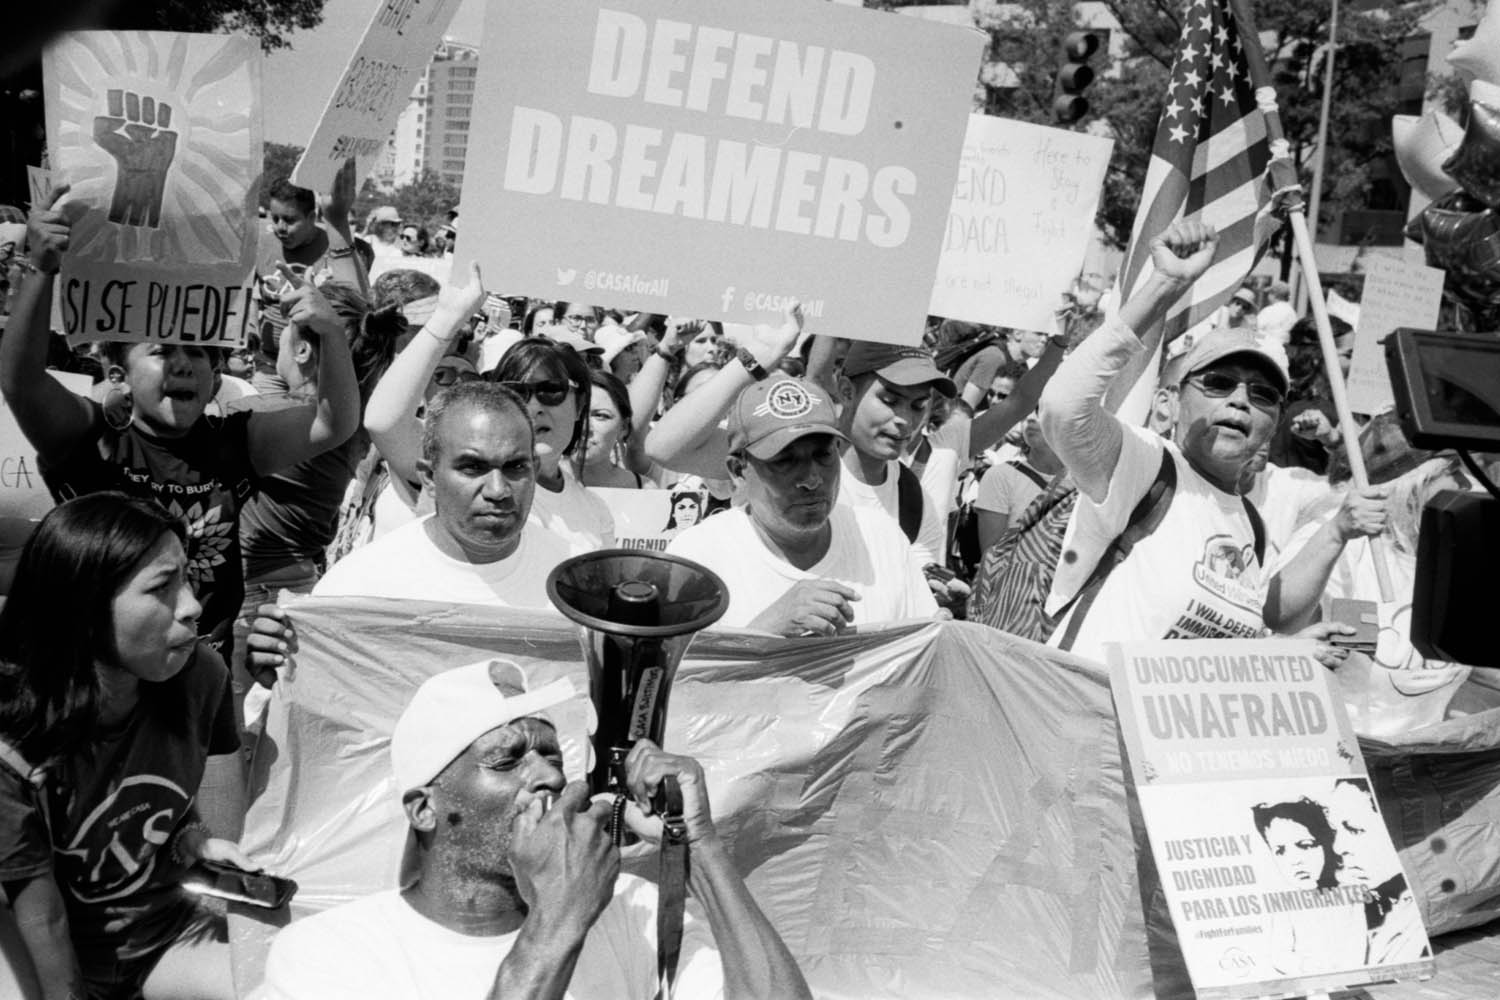 """Defend DREAMERS"" - Washington, D.C., September 2017"